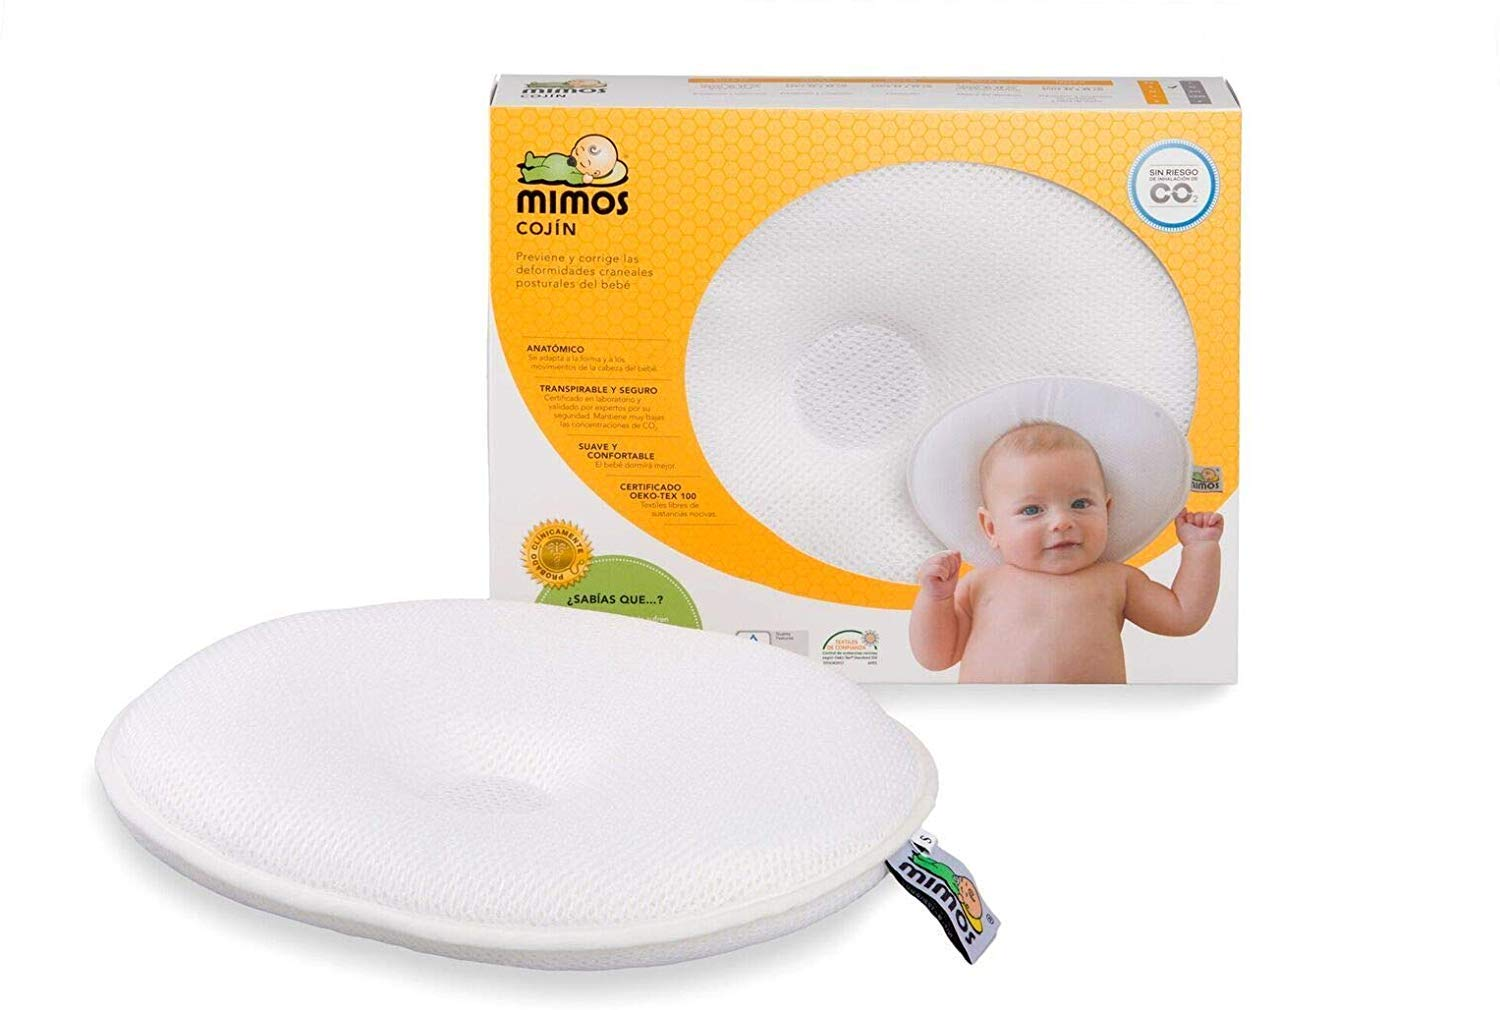 Mimos Baby Pillow New S Air Flow Safety Tuv